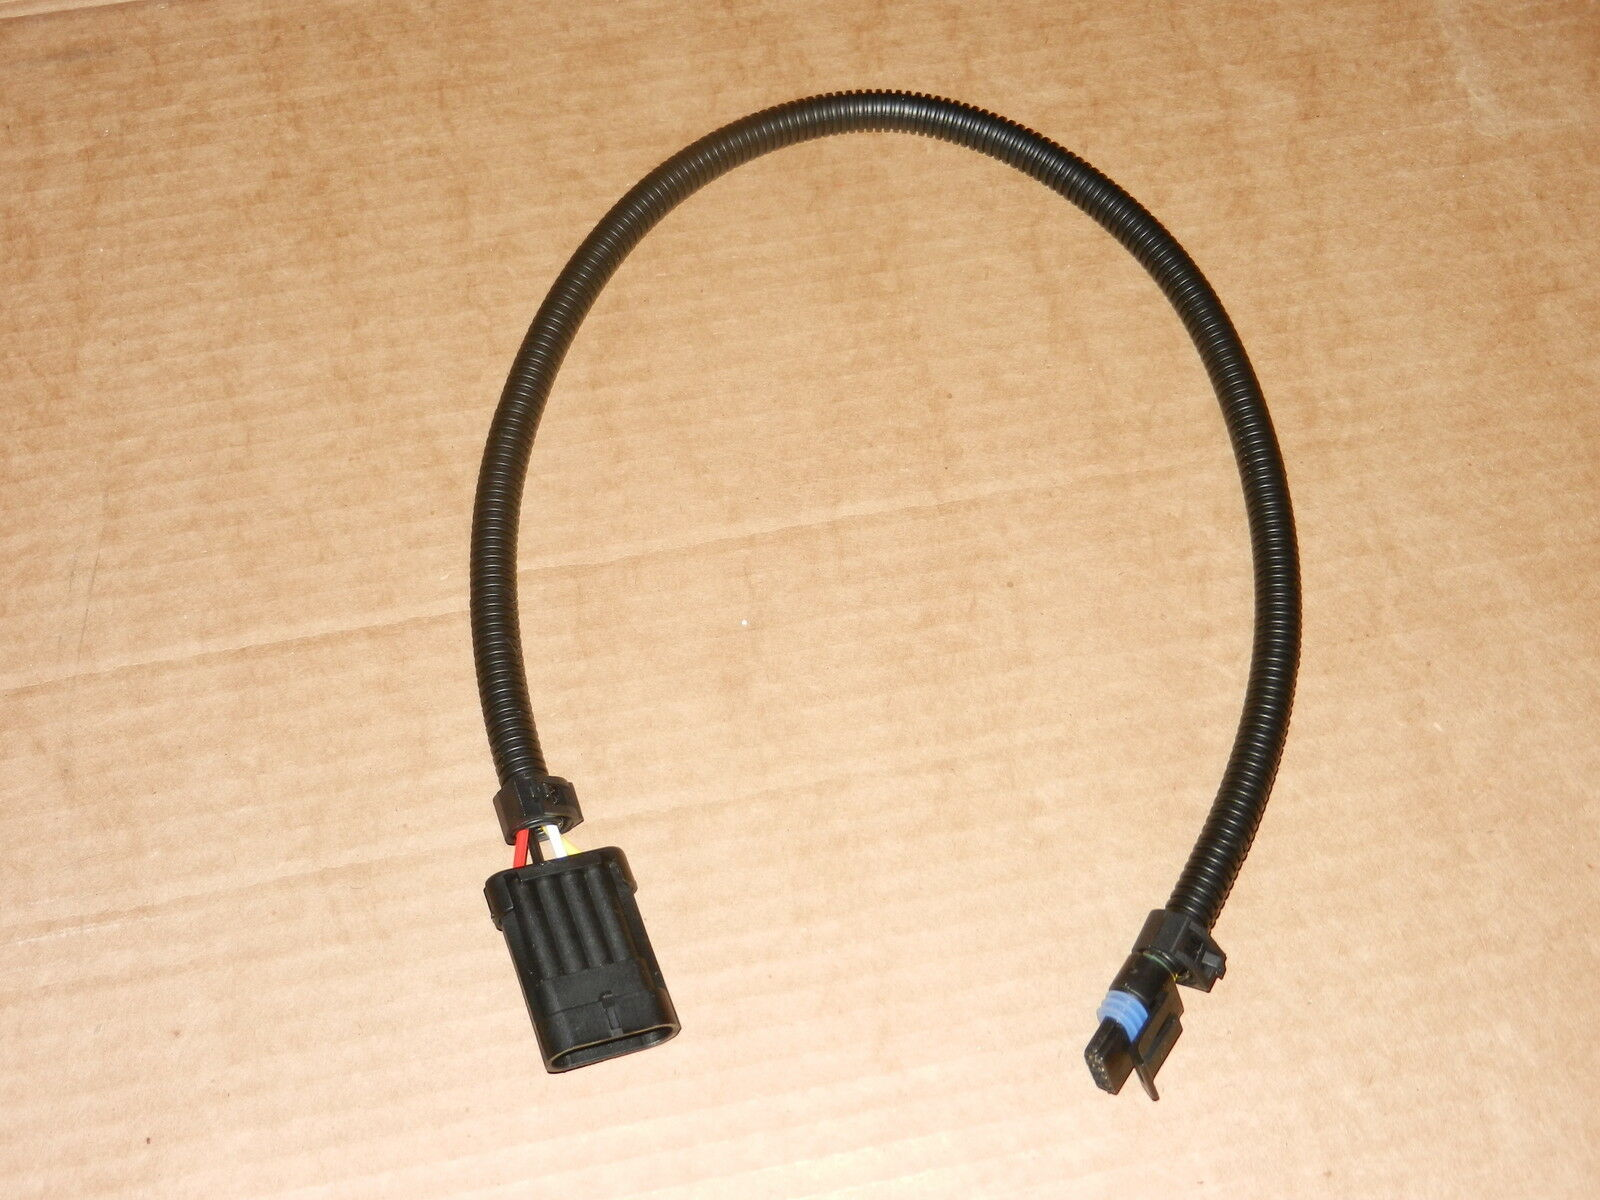 Camaro Firebird Trans Am Lt1 Ignition Distributor Optispark Wire Harness Ex Long 1 Of 1free Shipping See More